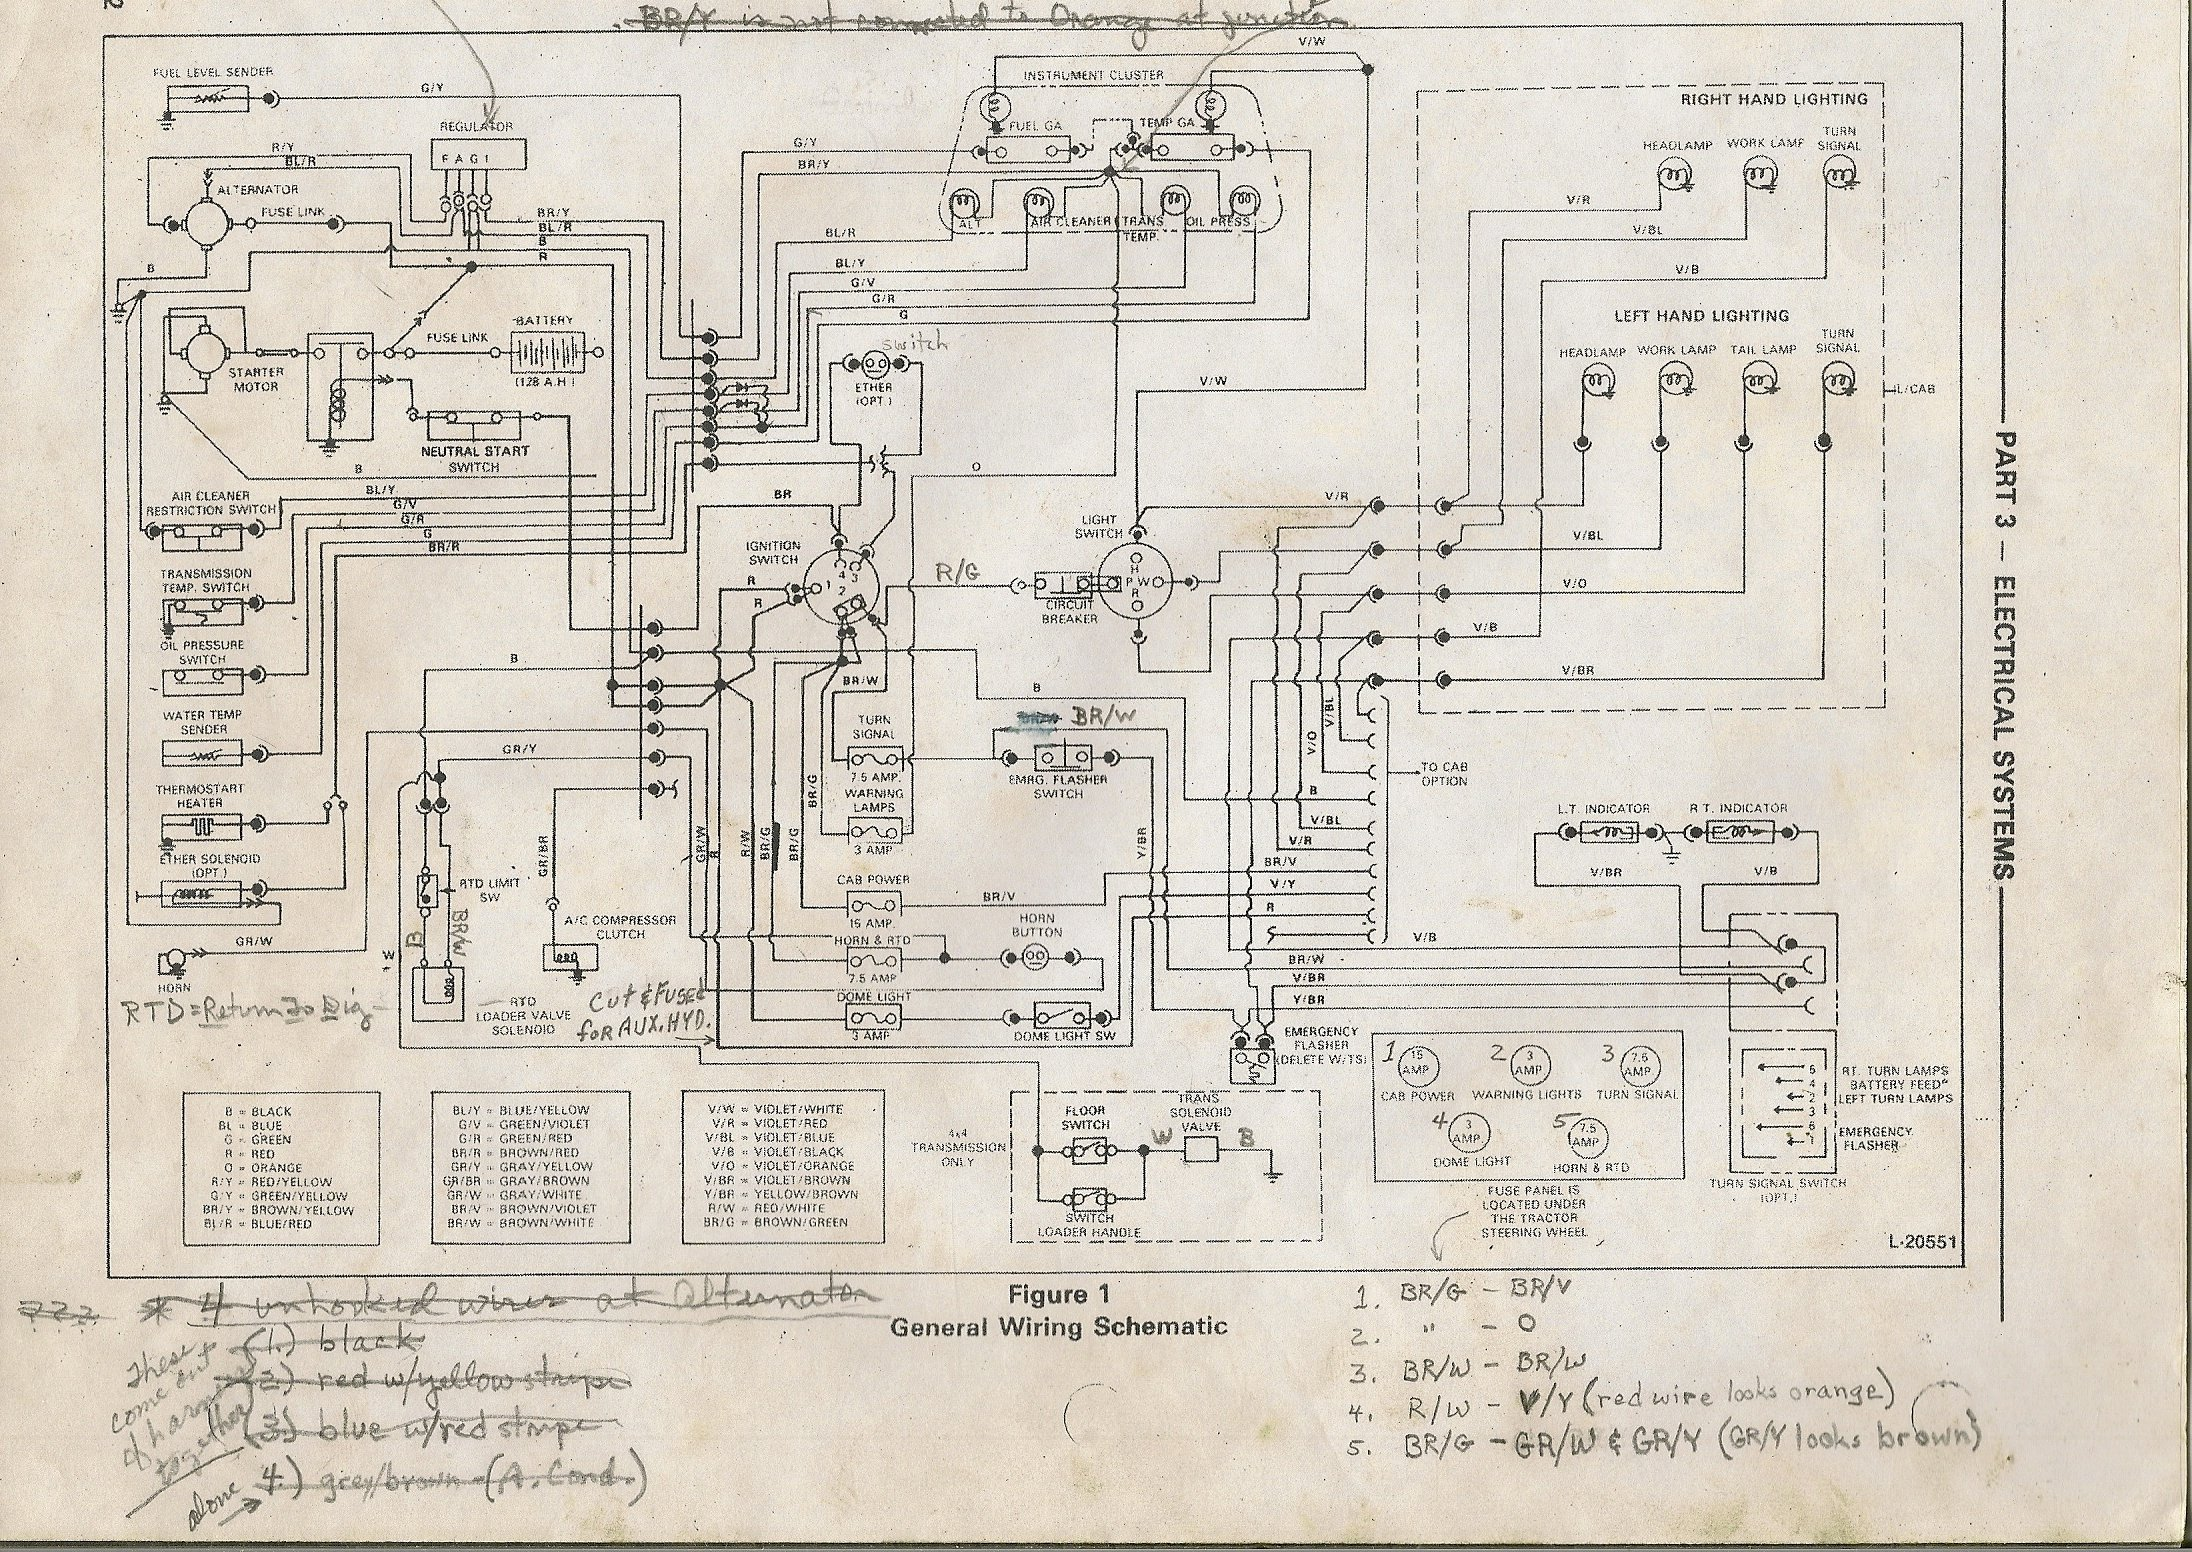 wiring diagram for reverse lights polaris ranger wiring diagram for tail lights i have 1987 ford model 655a backhoe that i can get only #9